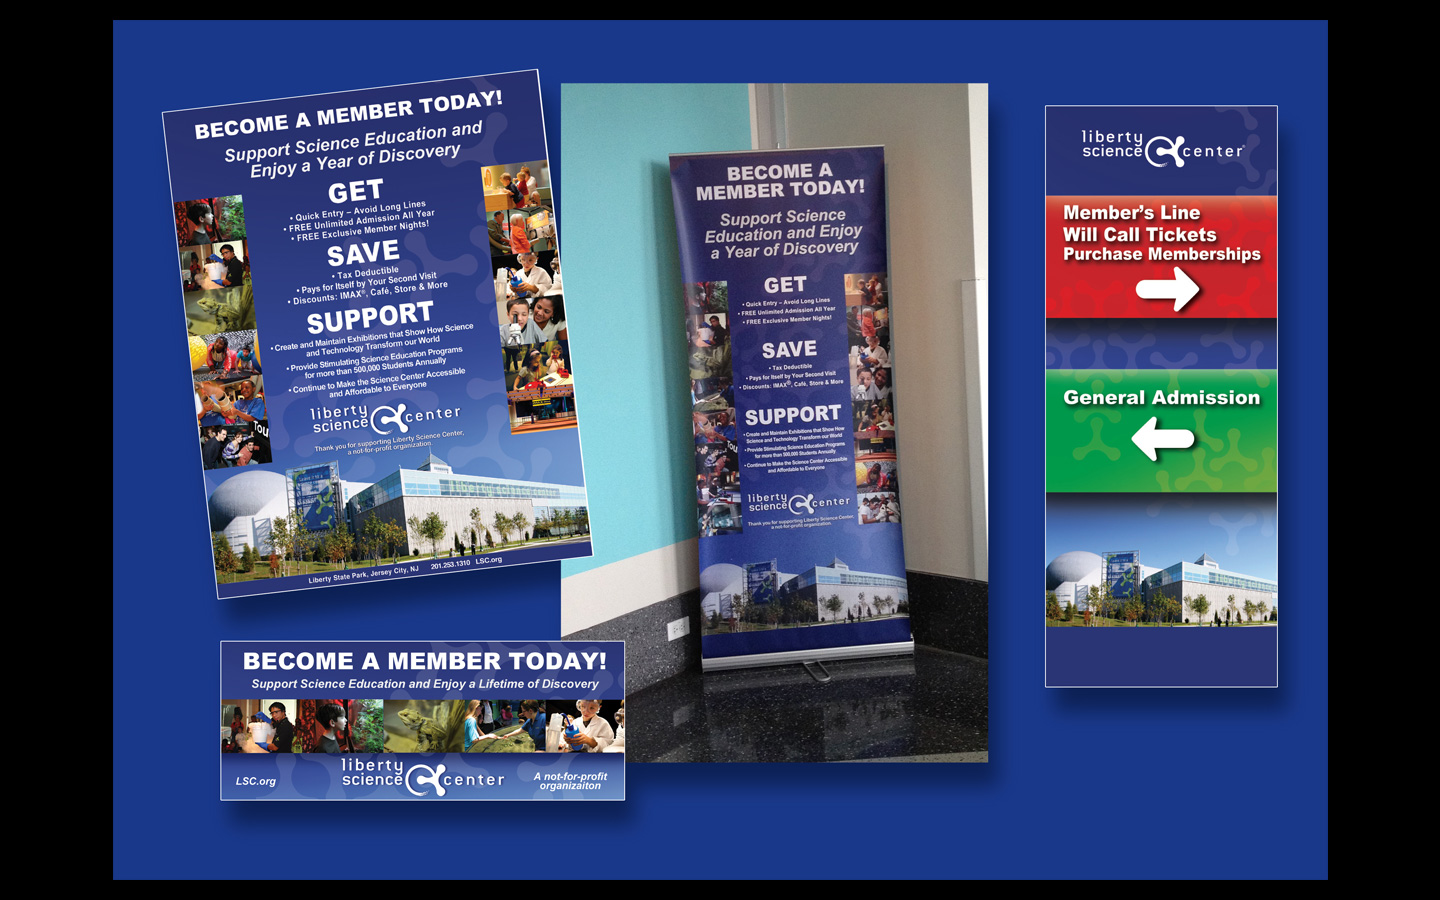 <p>Membership campaign signage, posters, materials and clings</p>